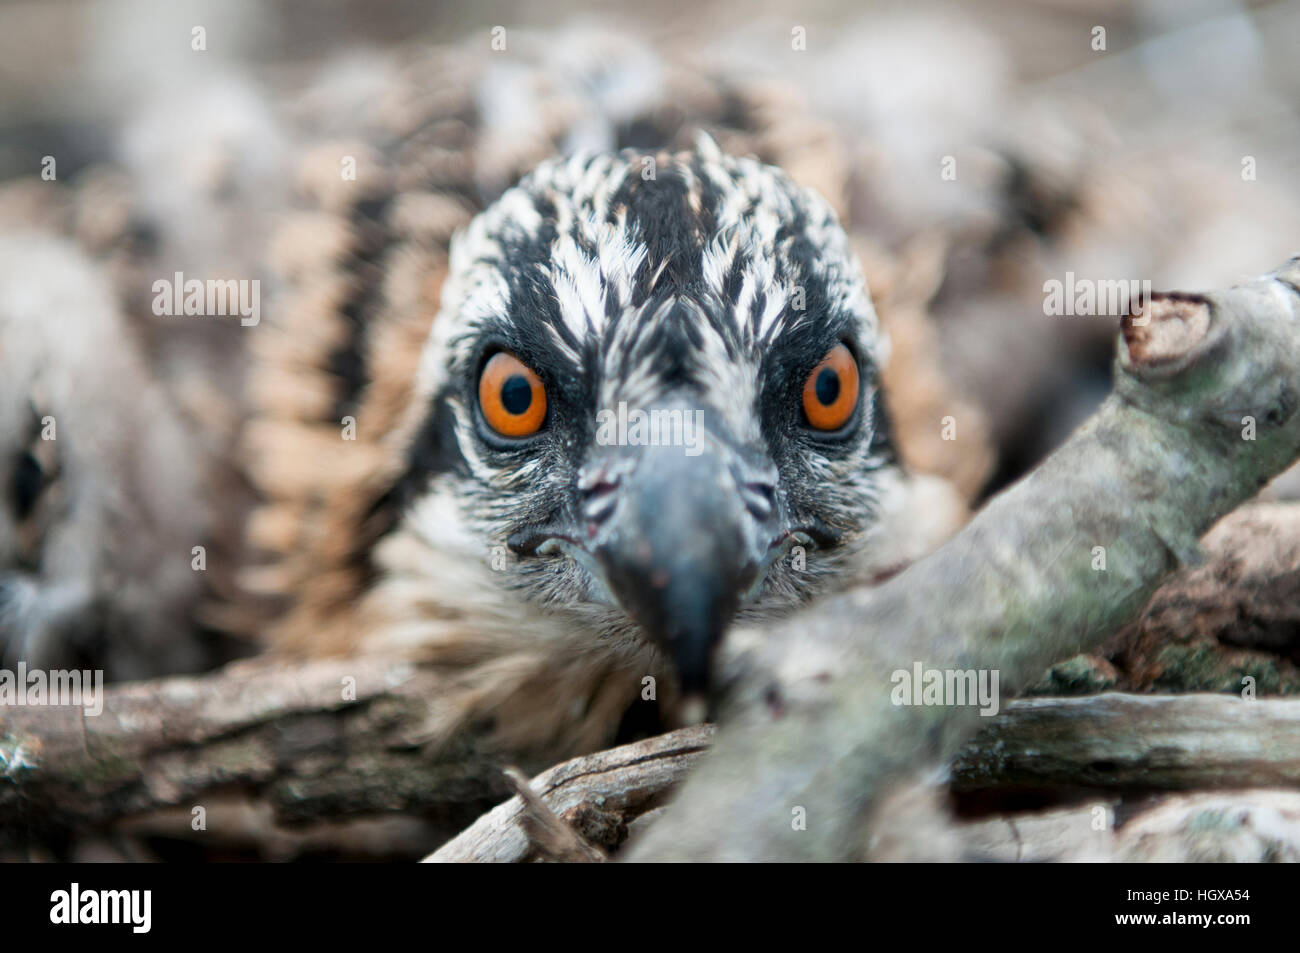 A close up featuring the bright orange eyes of a young Osprey sitting in its nest trying to stay hidden - Stock Image